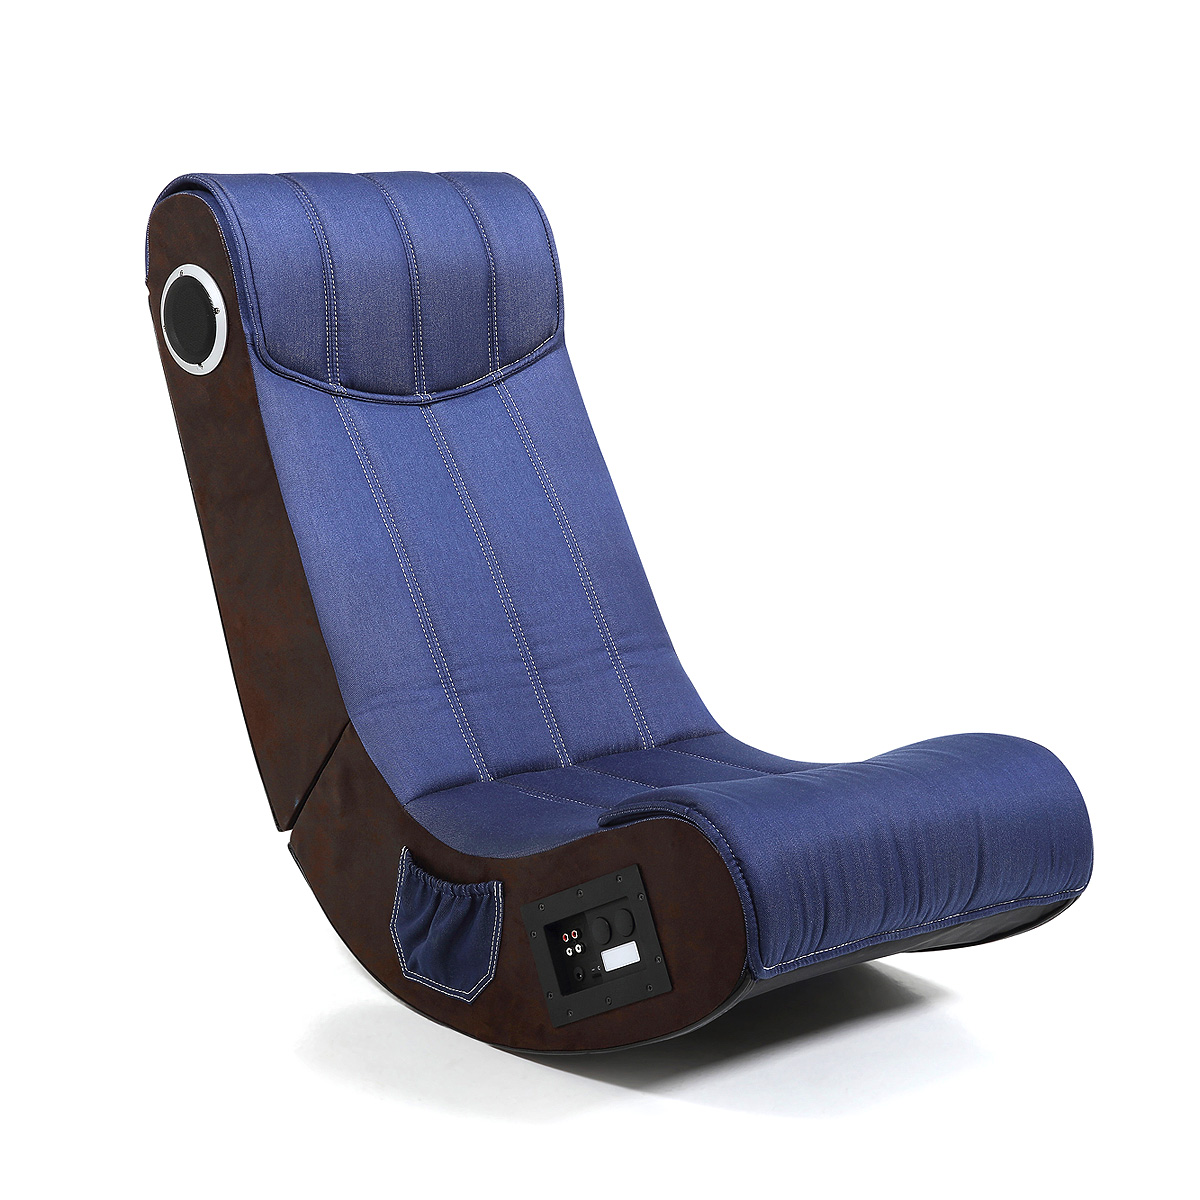 SESSEL GAME CHAIR SOUND PS3 XBOX Wii JEANS STOFF DENIM